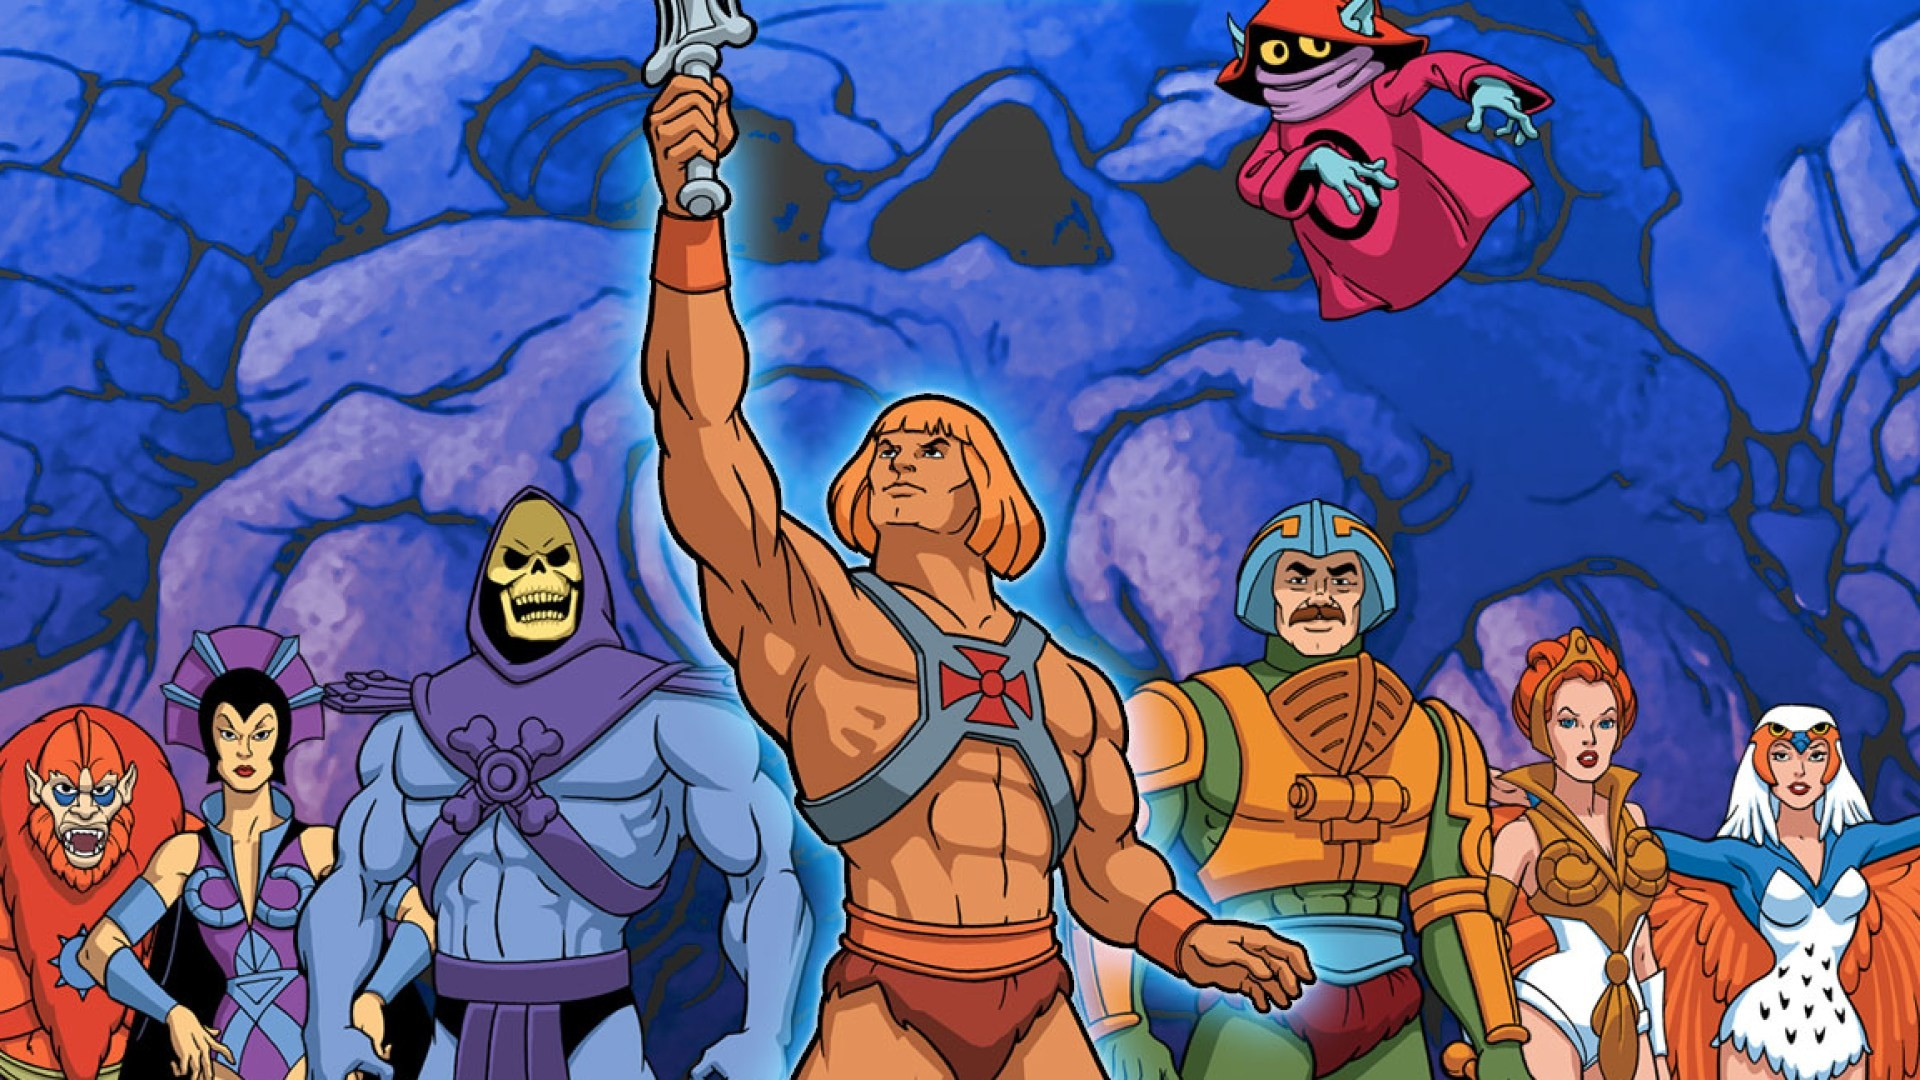 Res: 1920x1080, Skeletor Masters of the Universe He-Man 1080p HD Wallpaper Background